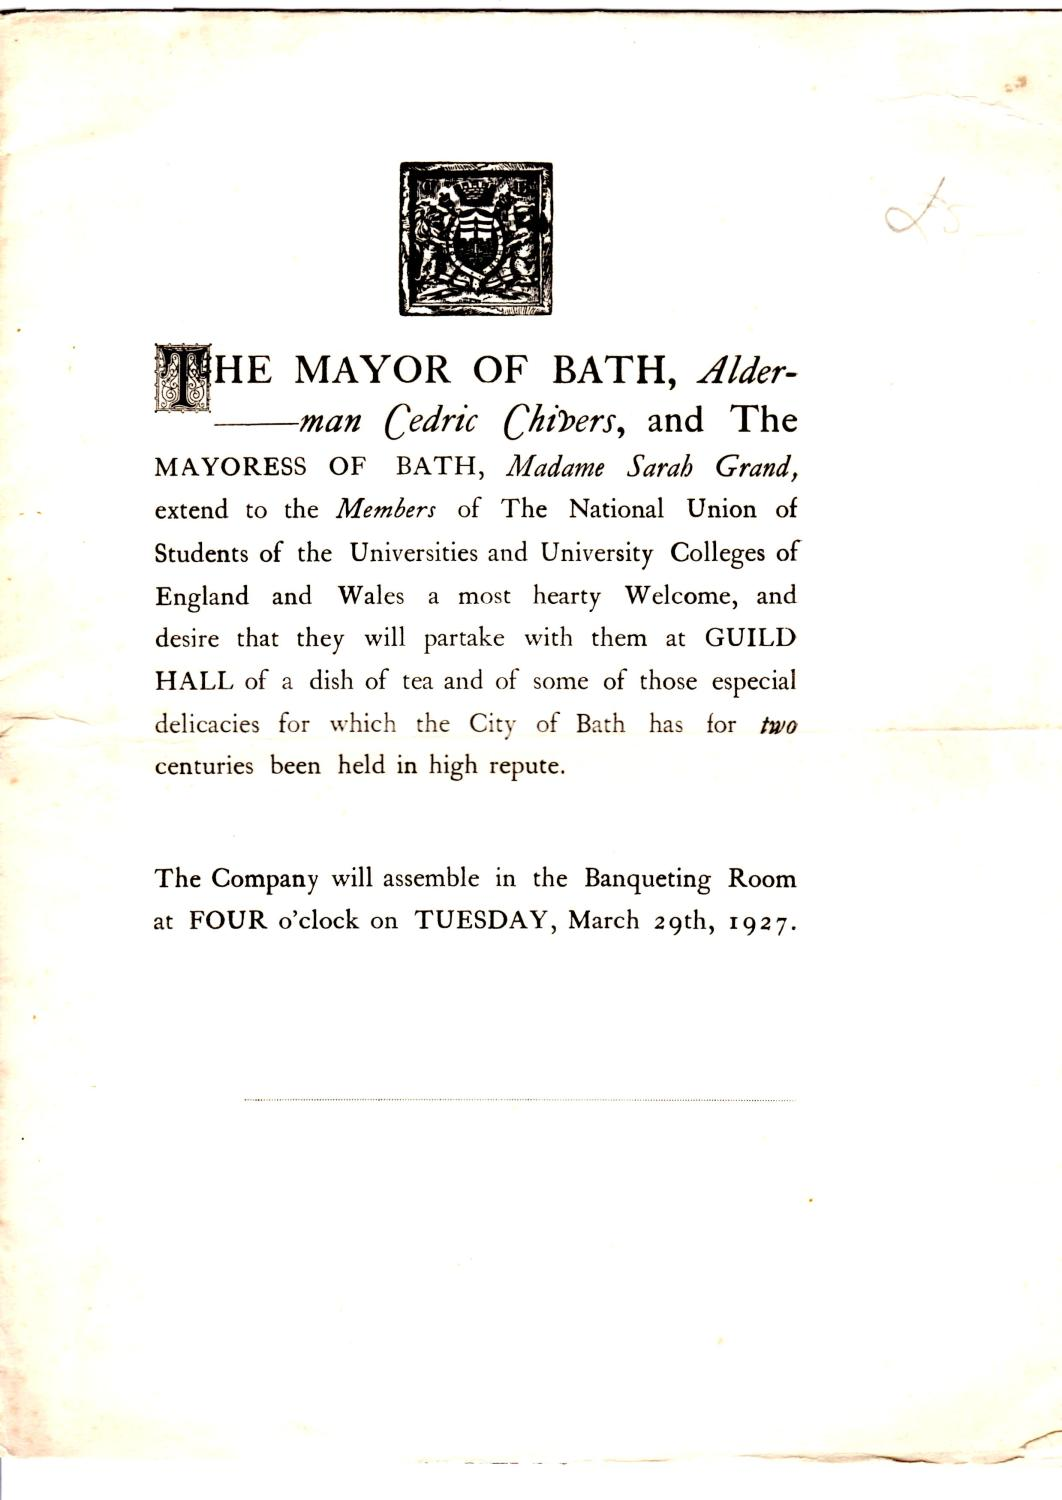 The Mayor of Bath, Alderman Cedric Chivers, and The Mayoress of Bath, Madame Sarah Grand, extend to the members of the National Union of Students of England and Wales, a most hearty welcome, . in the Banqueting Room, at four o'clock on Tuesday, March 29th